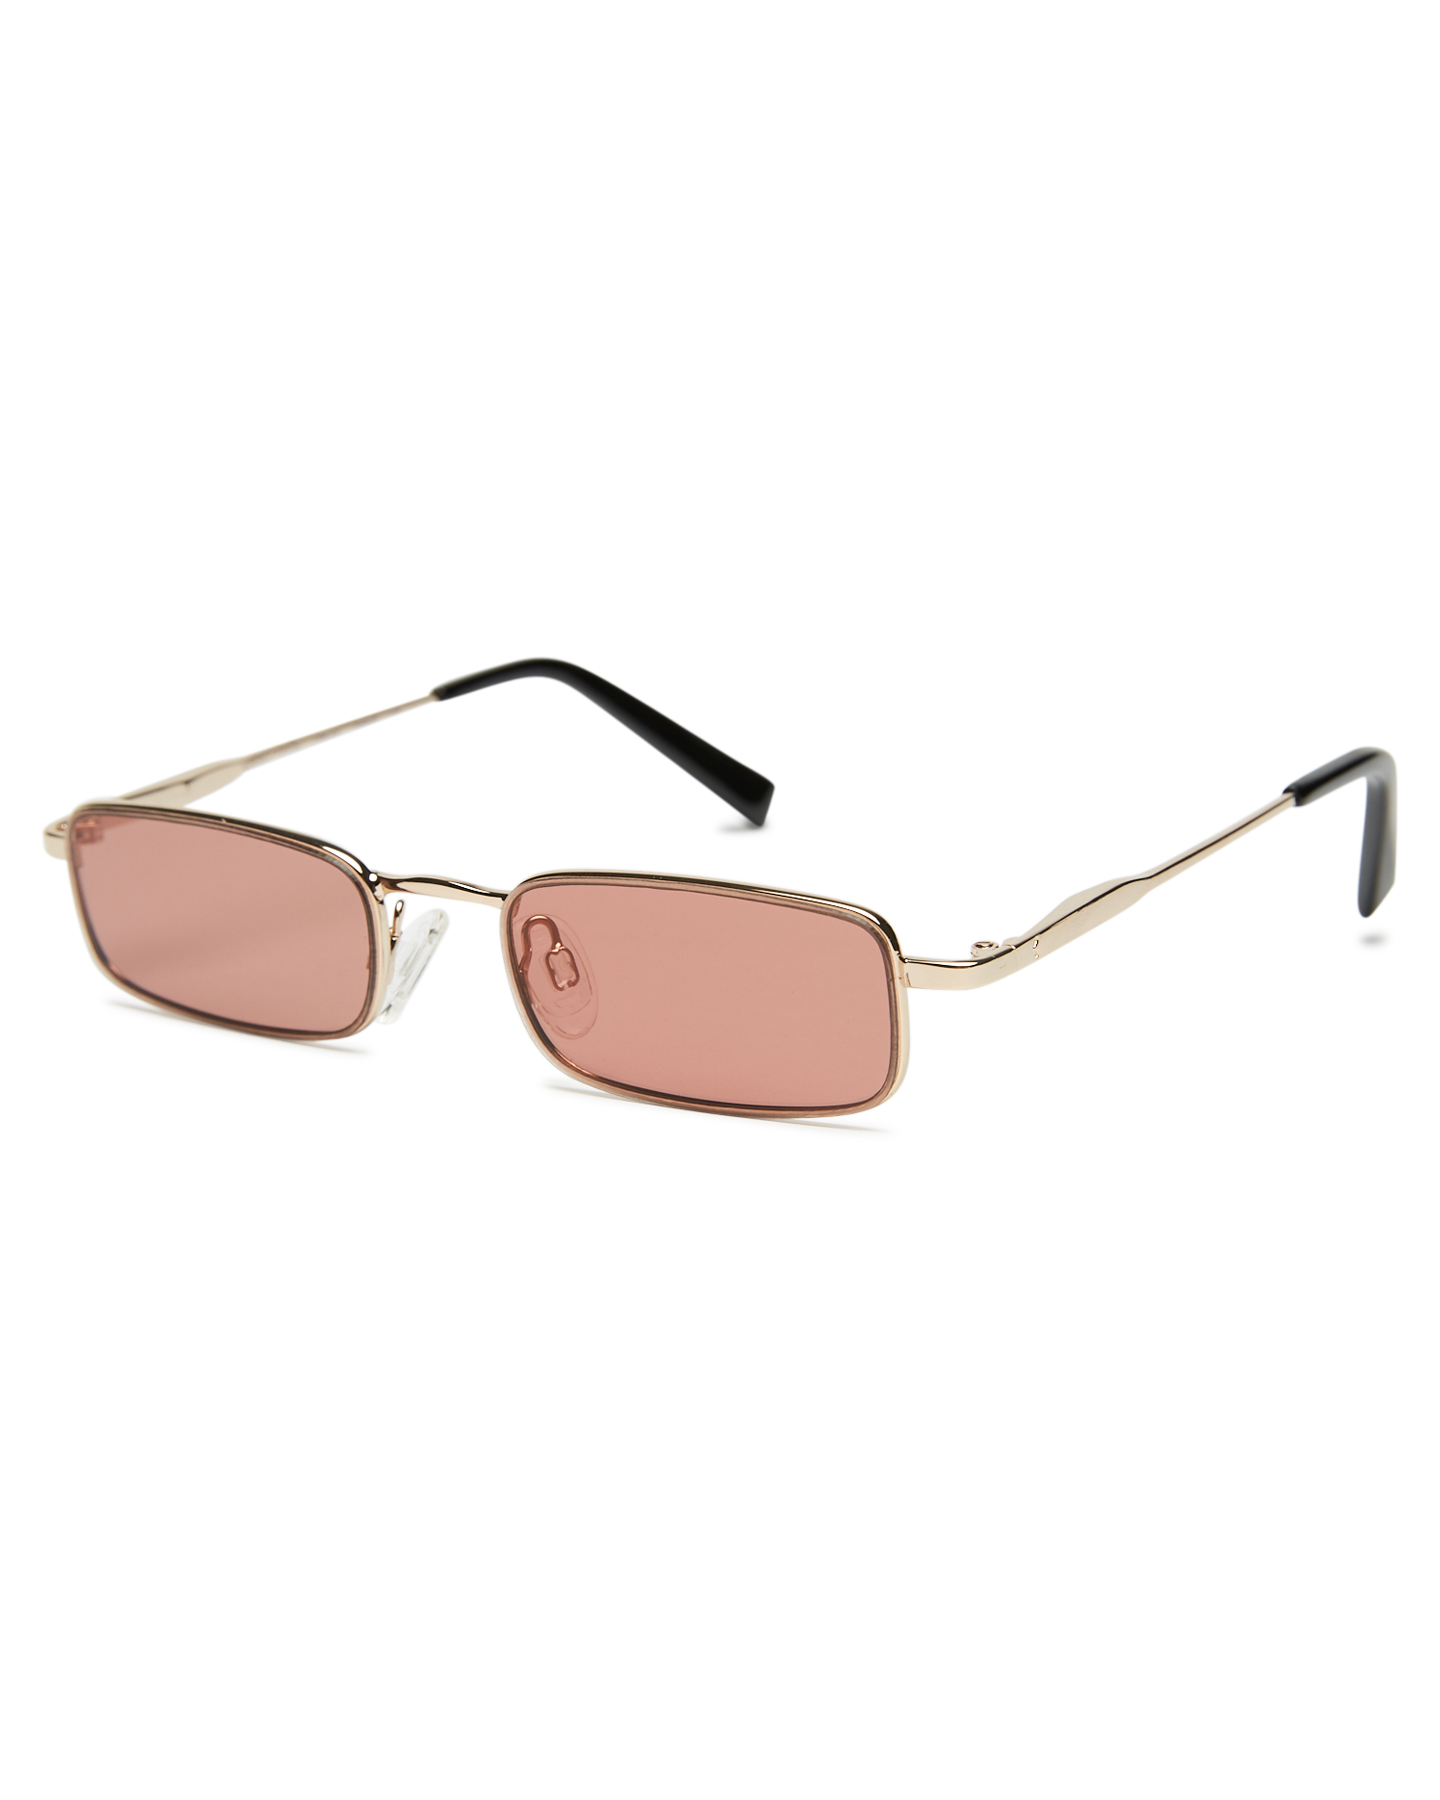 Kendall And Kylie Lancer Sunglasses Shinny Light Gold